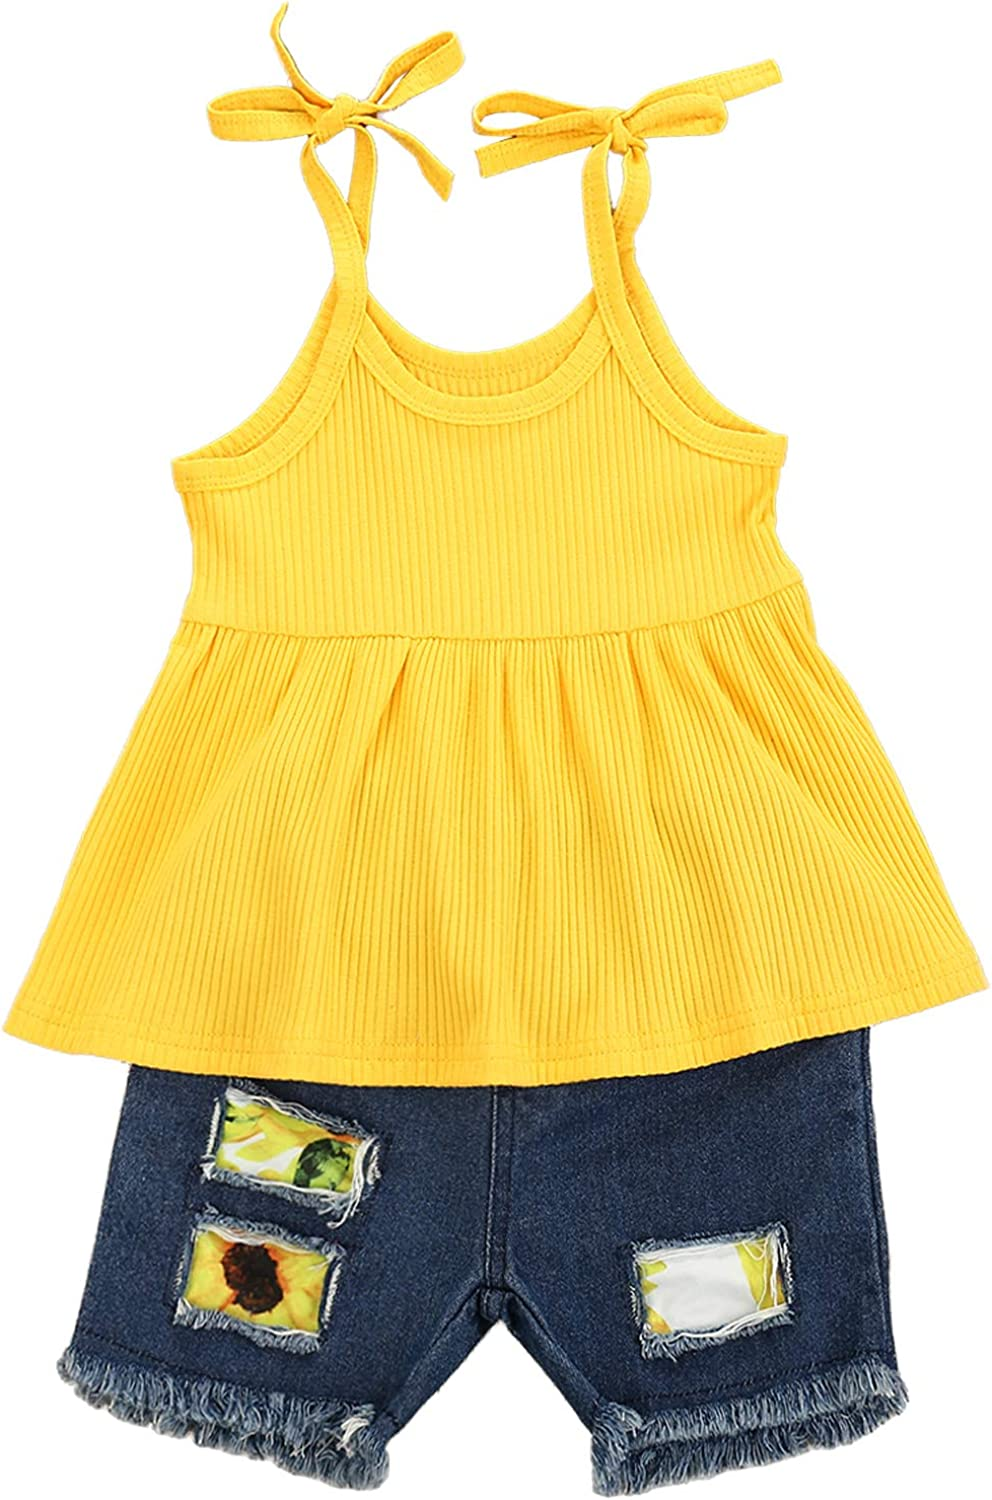 Toddler Baby New Shipping Free Shipping Girl Outfits Bow Halter Sacramento Mall + Bowknot Tops Crop Flower